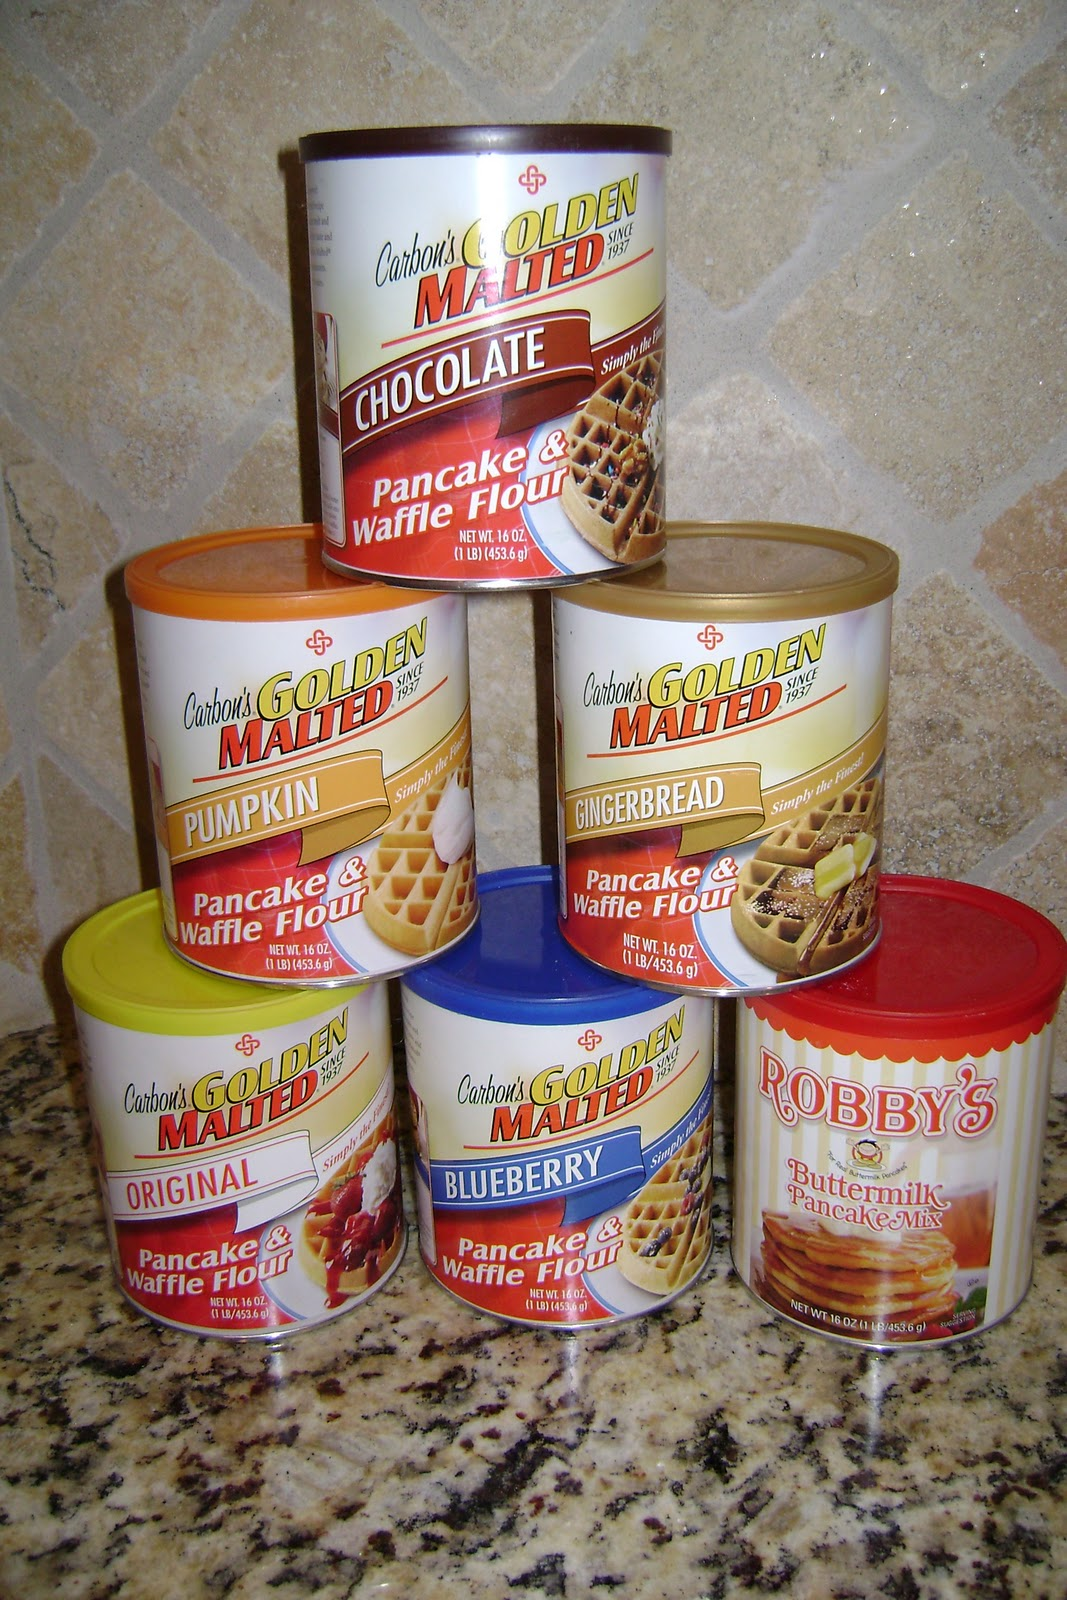 I Gave My Pas The Canister Of Chocolate Waffle Mix To Try Out Since Mom Was One Who Told Me About Carbon S Golden Malted Mi